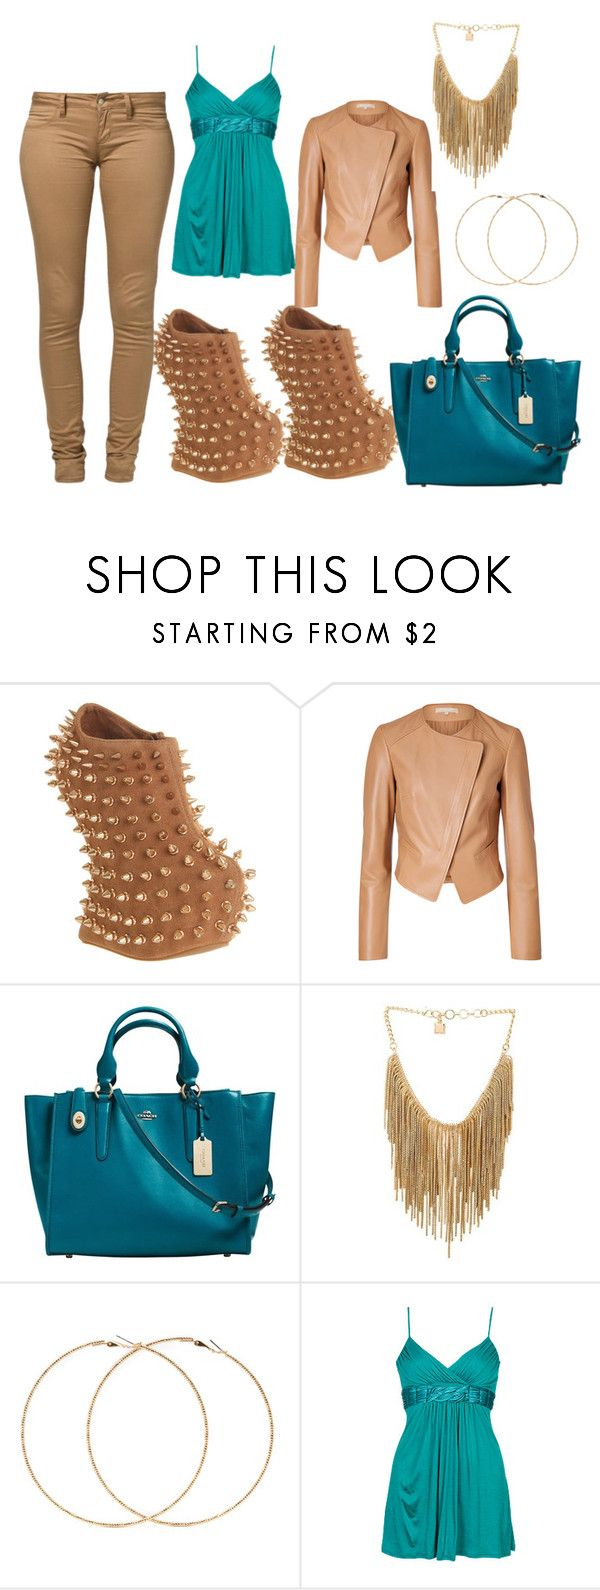 """Untitled #498"" by svhs2019 ❤ liked on Polyvore featuring Jeffrey Campbell, Michael Kors, Coach, BCBGMAXAZRIA, Forever 21 and Monkee Genes"